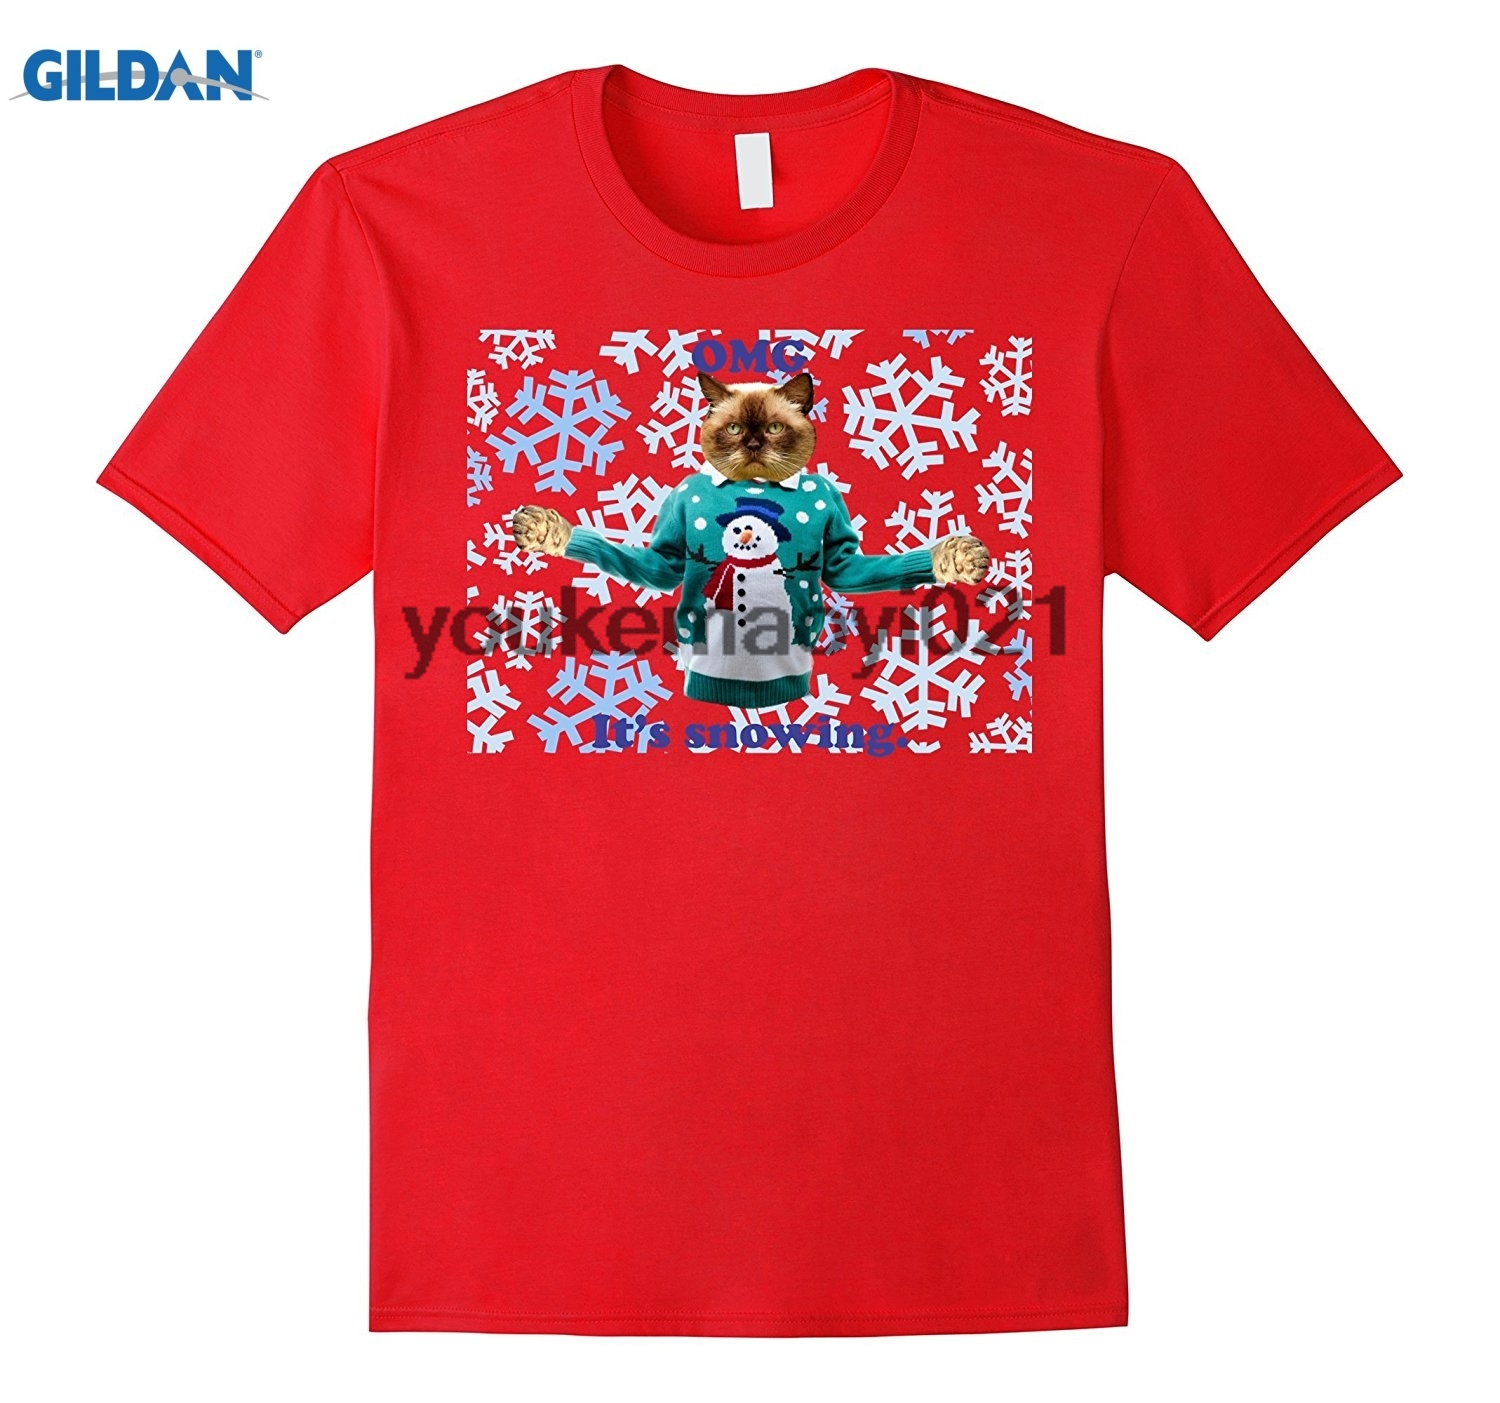 GILDAN Grumpy Christmas Sweater Funny T-shirt